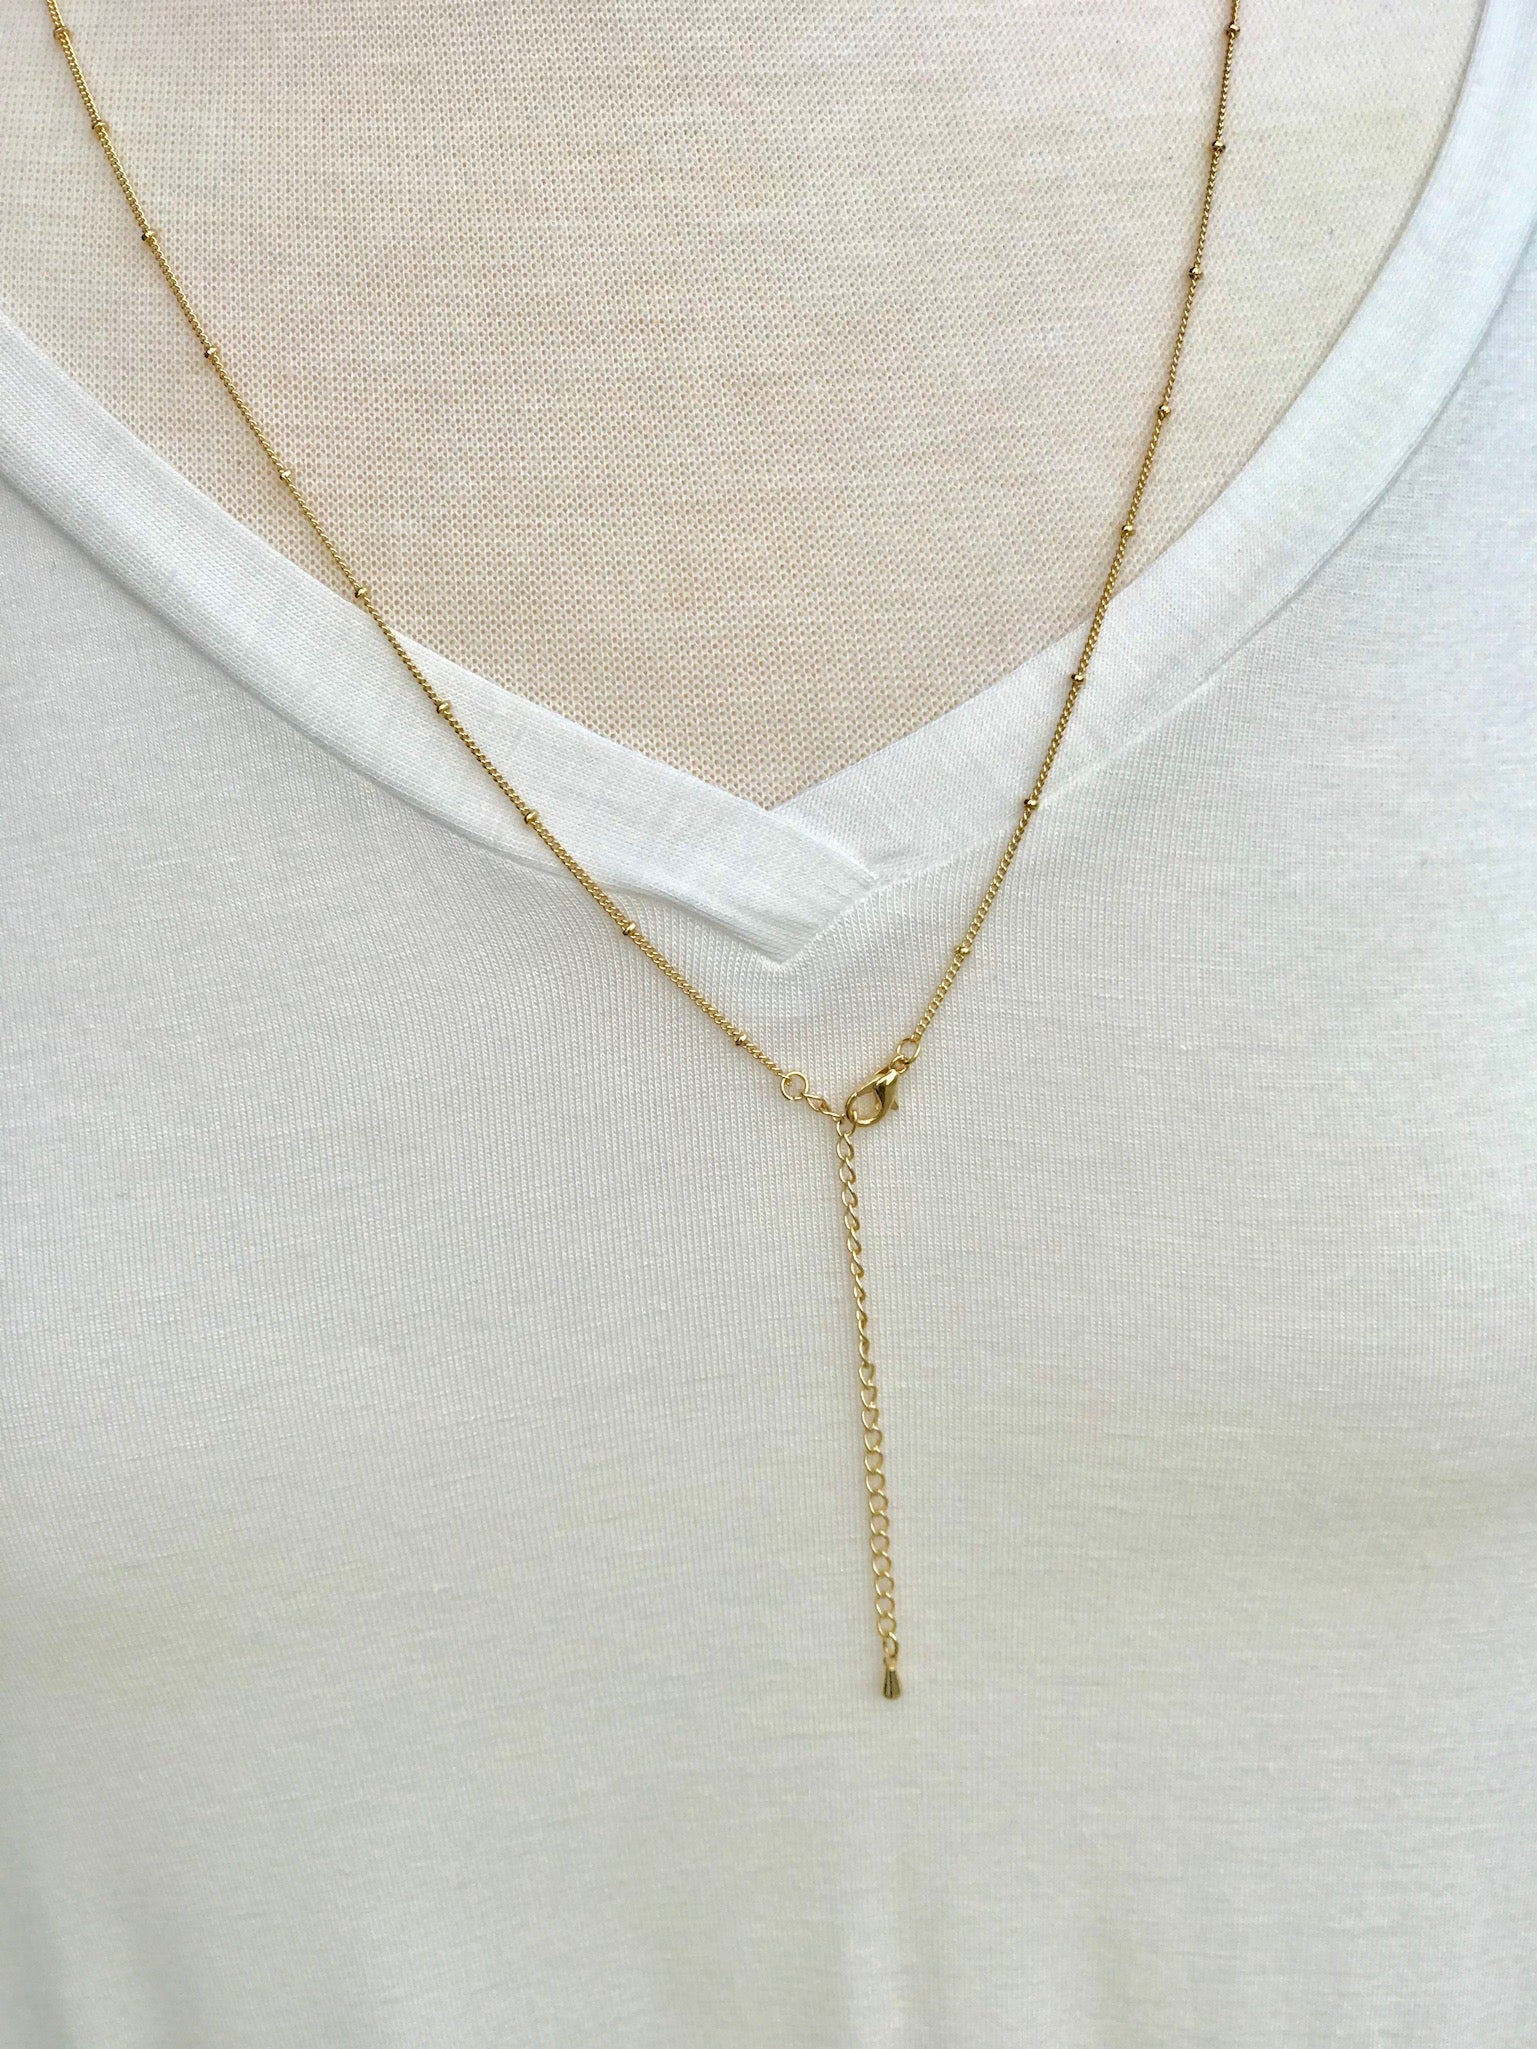 Long Gold Ella Necklace with Beaded Pendant